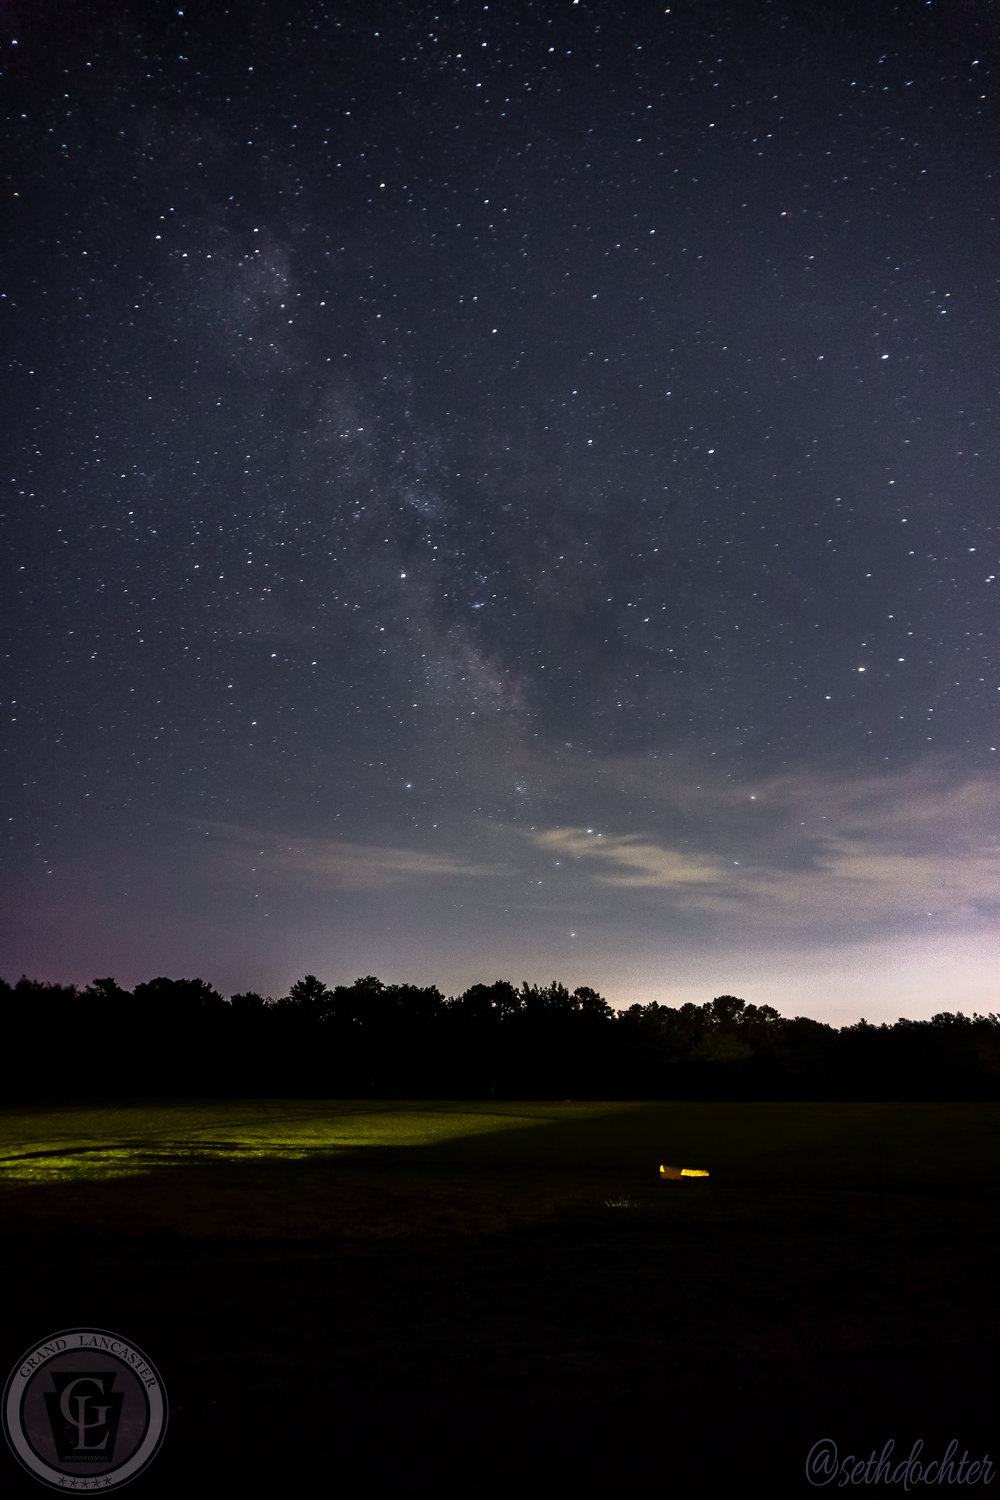 The Milky Way as seen at Cape Henlopen State Park while we waited for the traffic to ease up after the fireworks